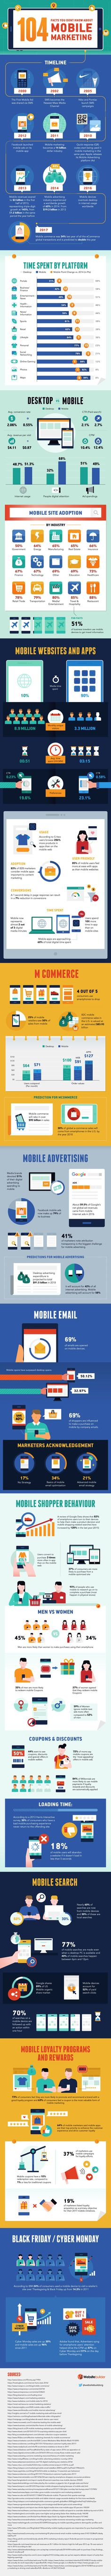 104 Facts You Didn't Know About Mobile Marketing summarized in a neat infographic for you